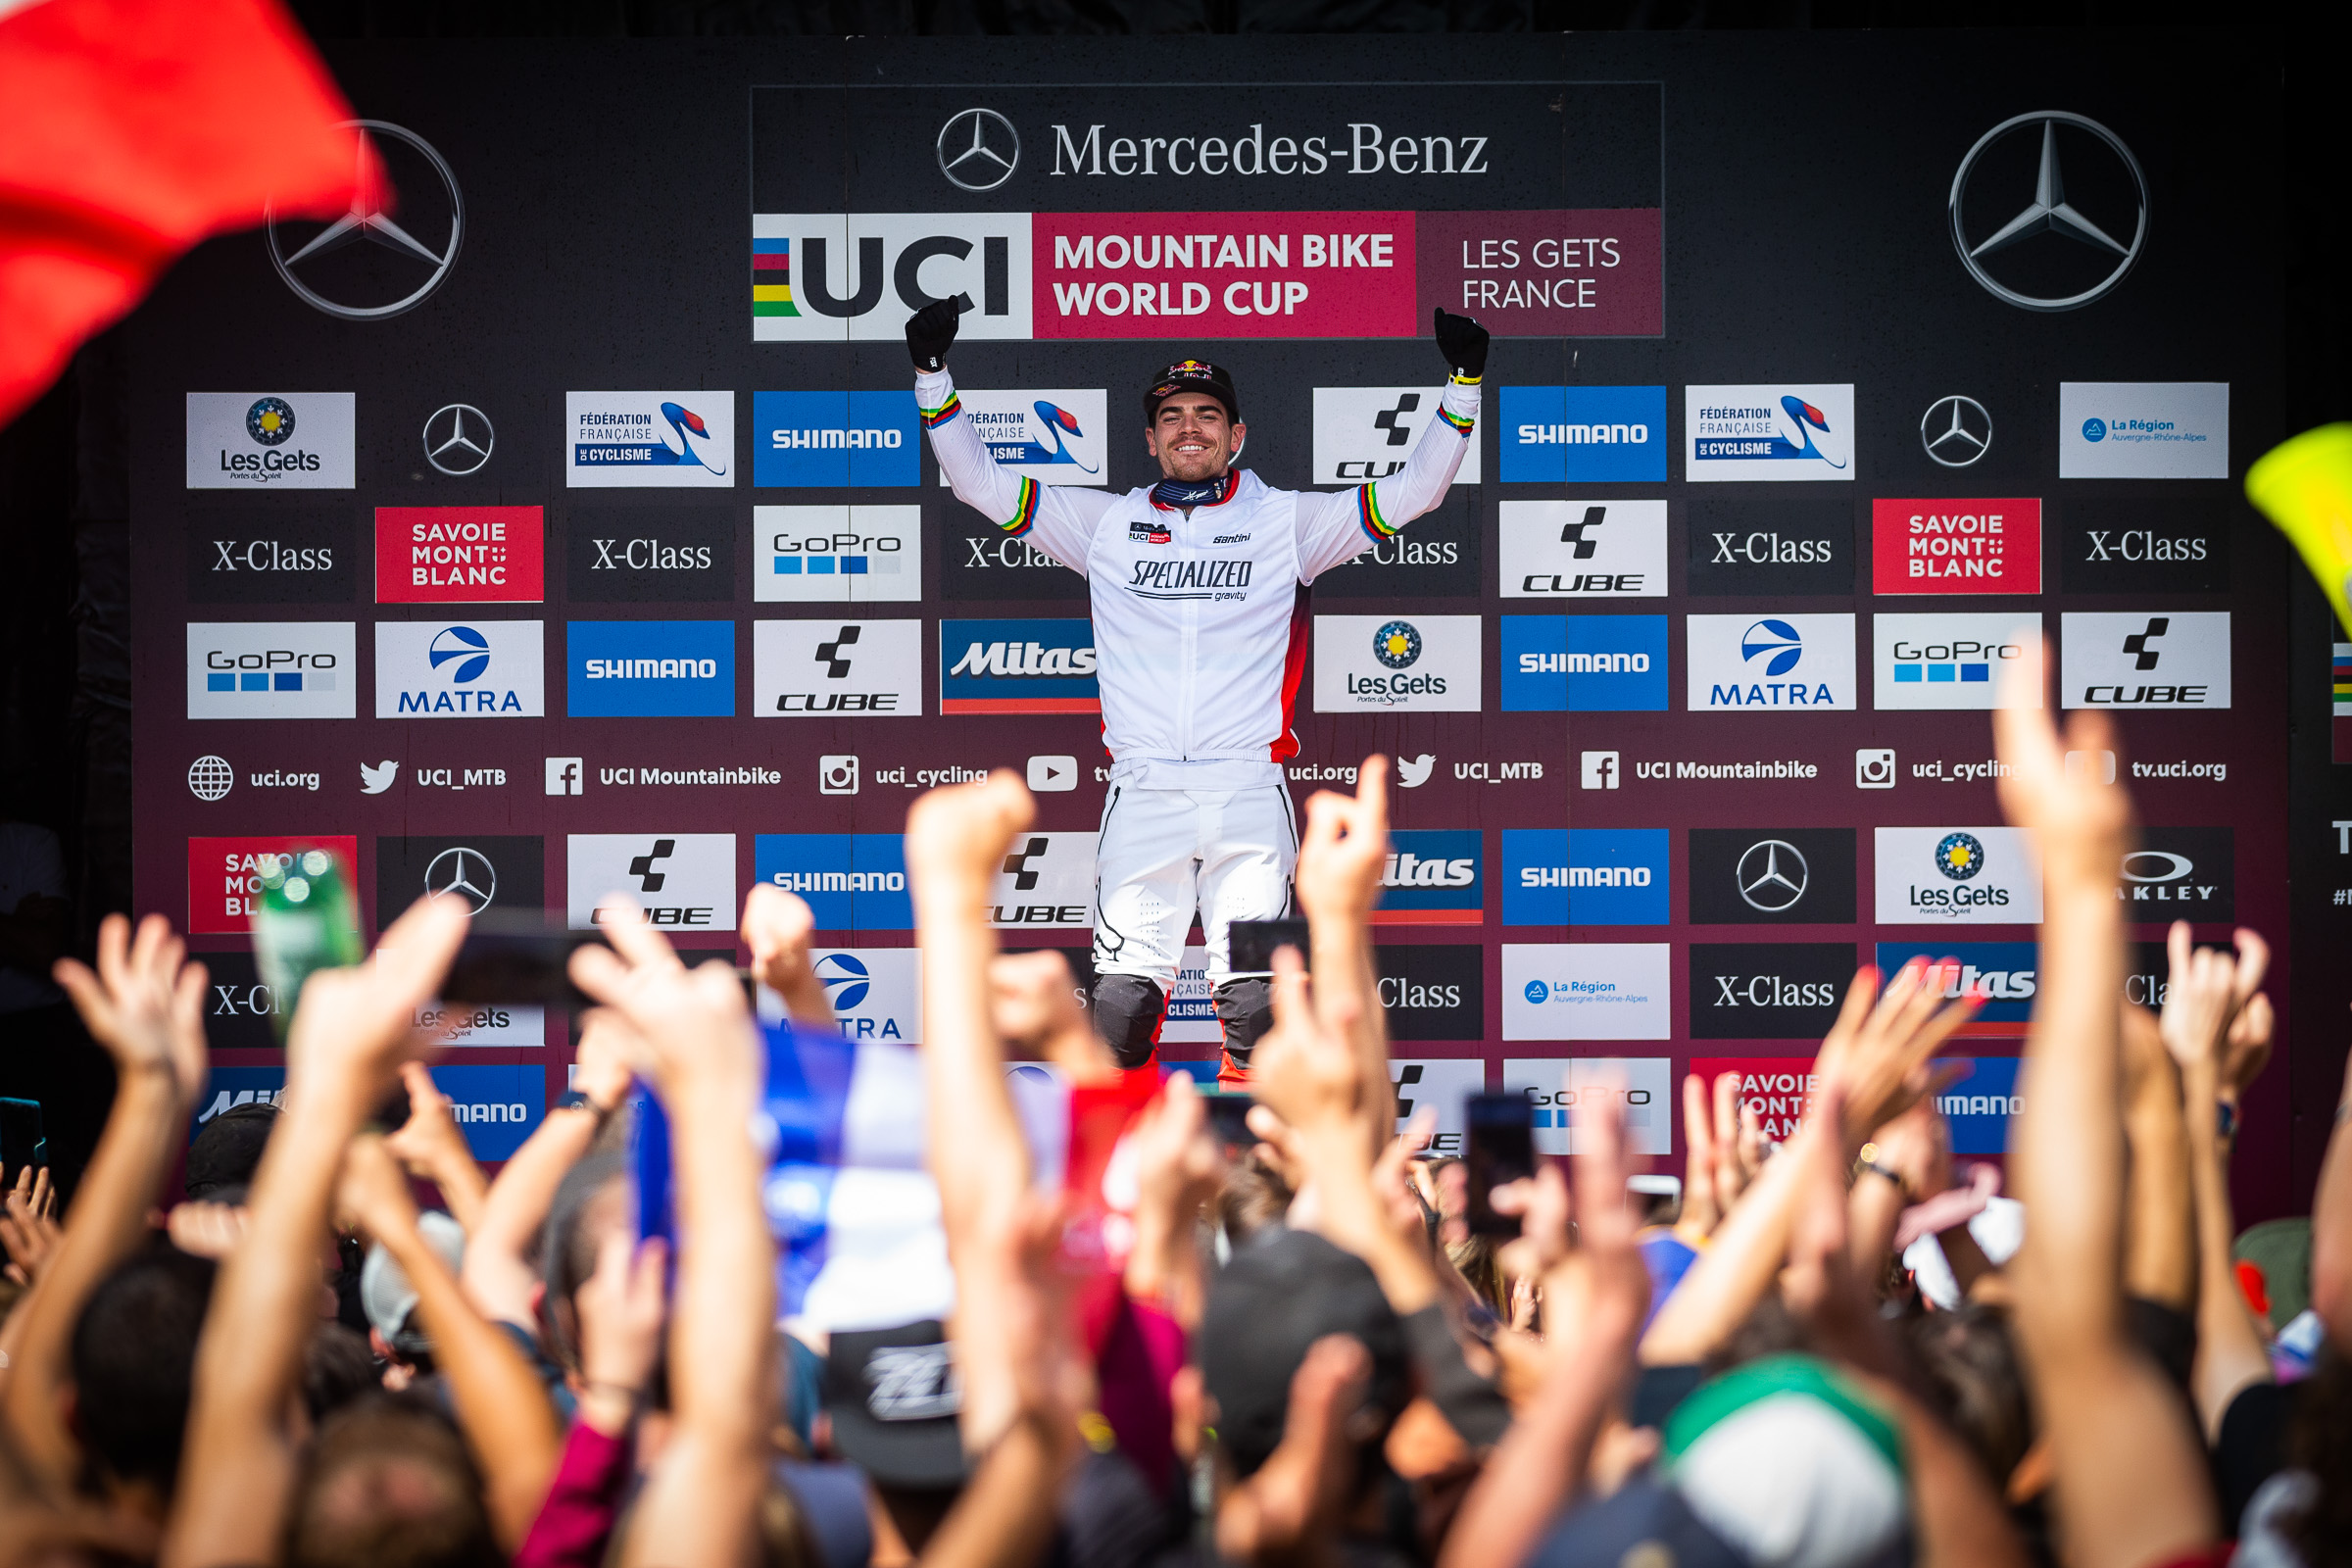 world cup dh les gets 2019 bruni leader